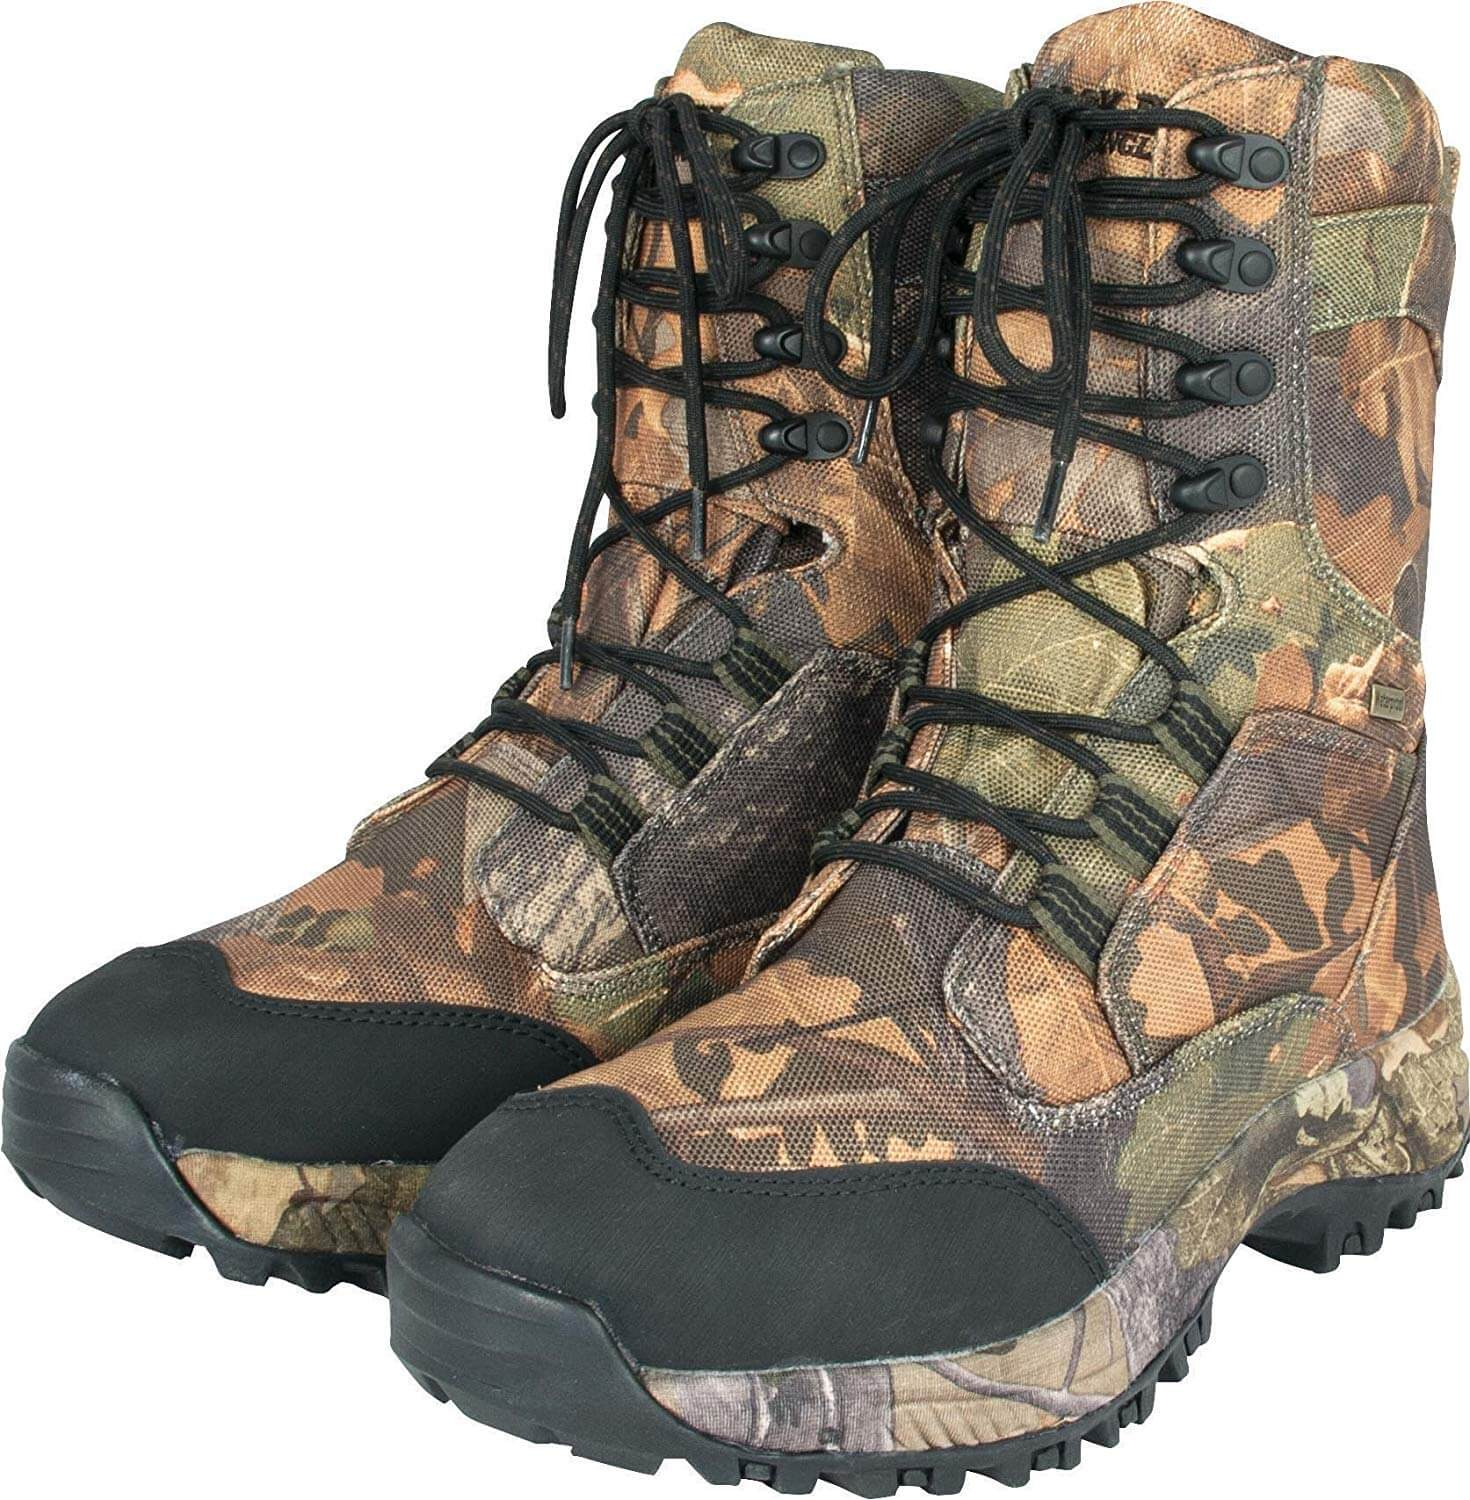 online store 1bbd9 59b3b Waterproof Fishing Boots - Fishing Shoes - Bivvy Slippers